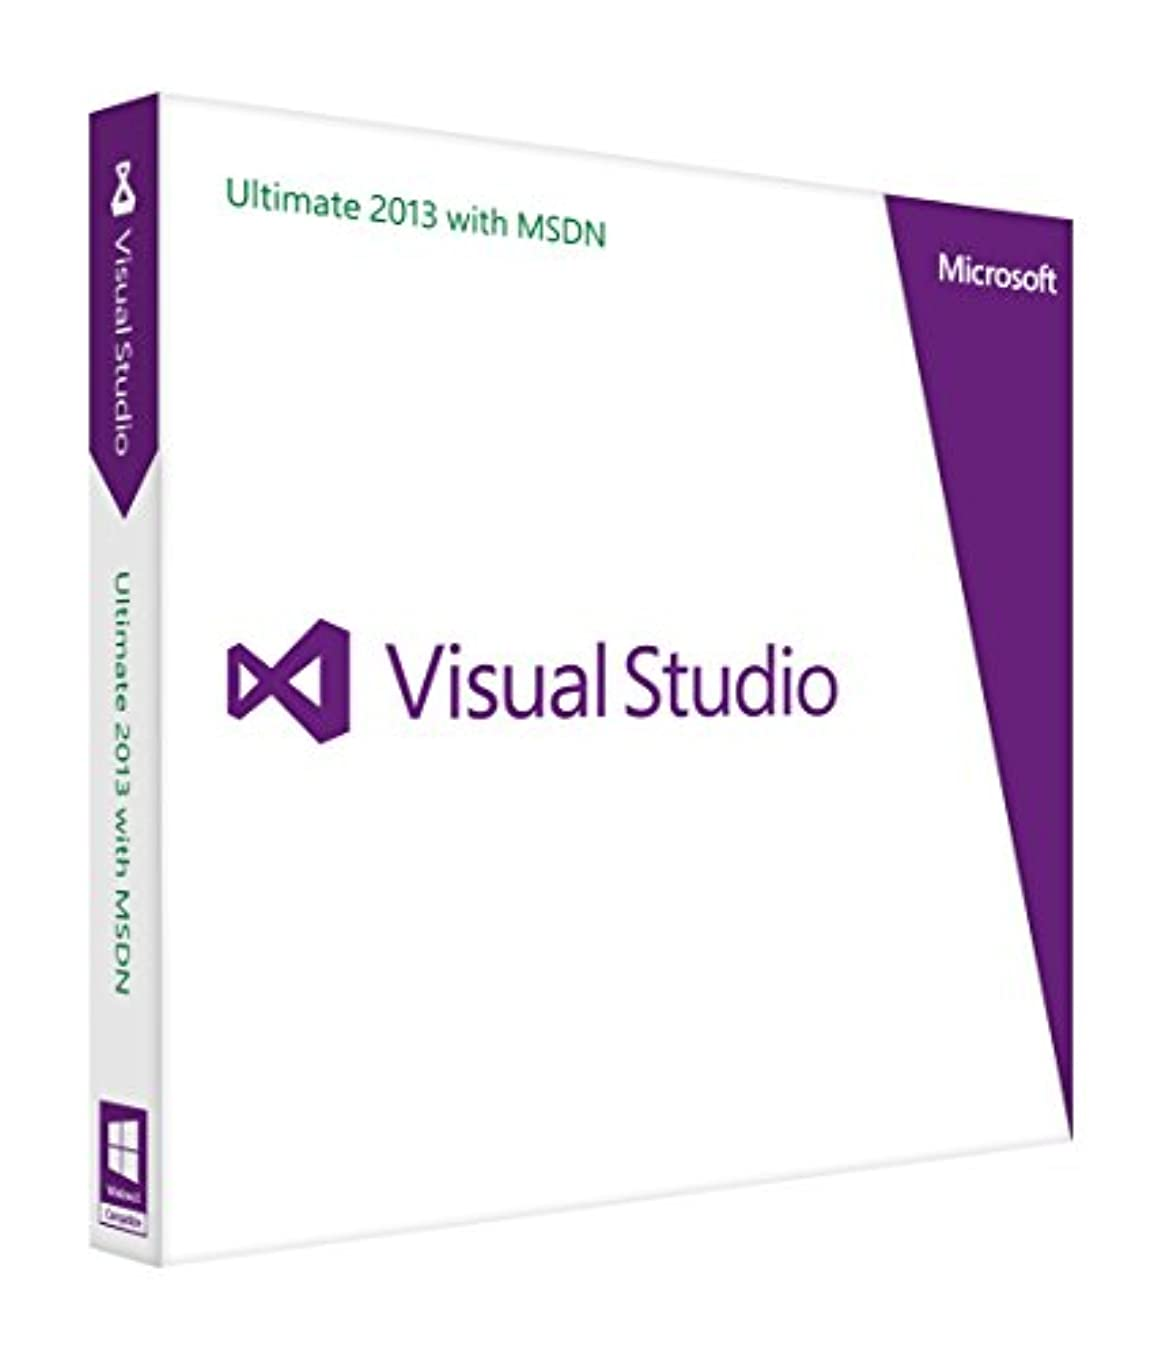 権利を与える誘惑汗Microsoft Visual Studio Ultimate 2013 with MSDN英語